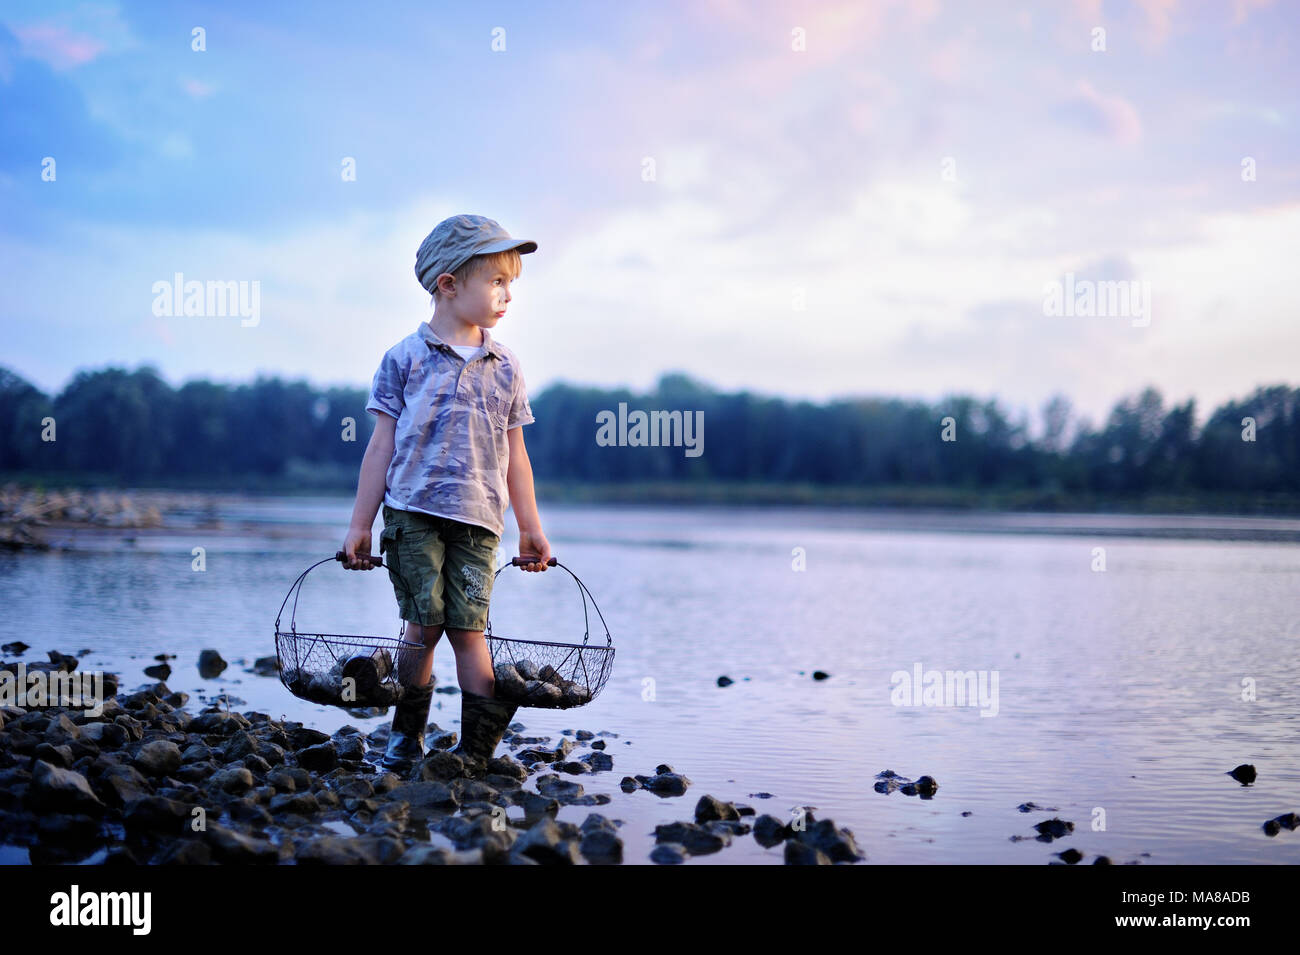 A little boy is playing on the bank of the summer river. - Stock Image